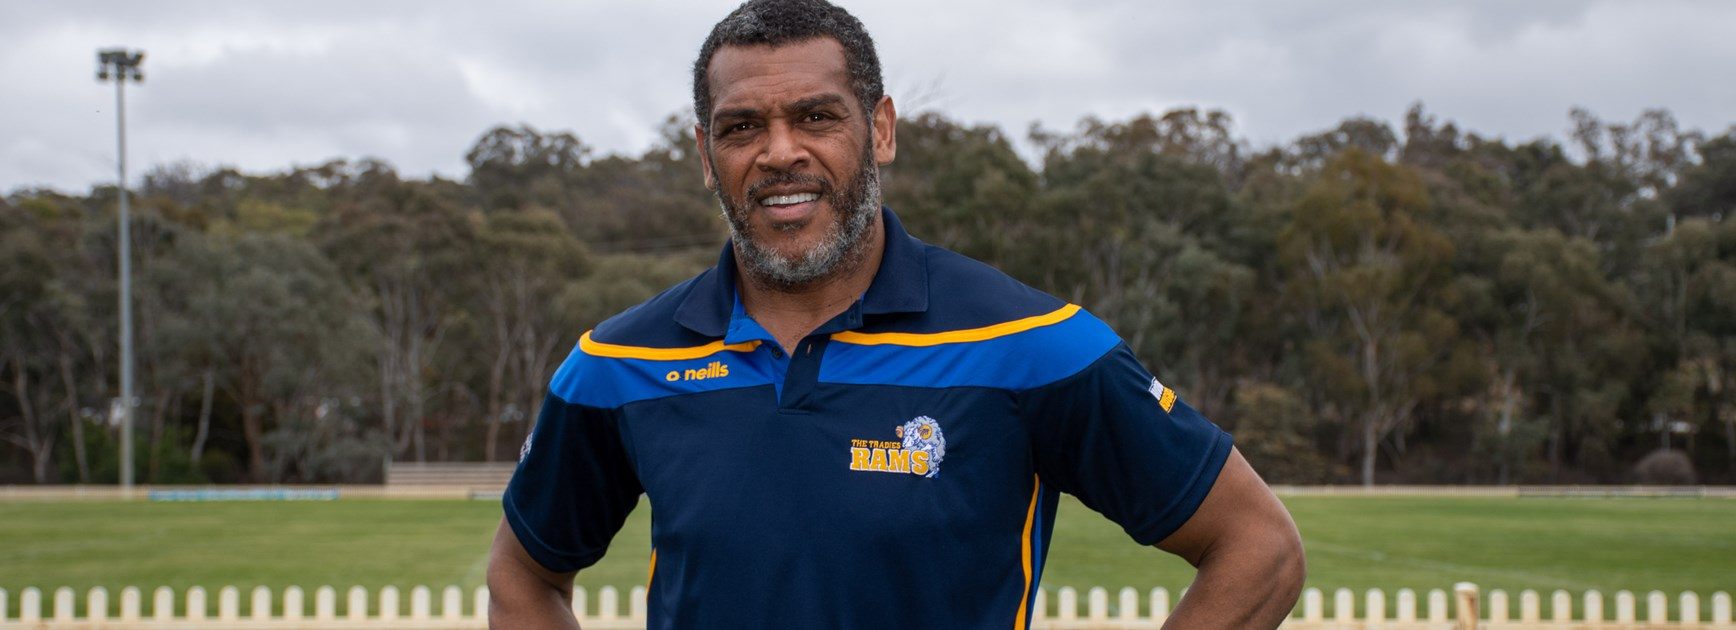 Nagas to coach Woden in 2020